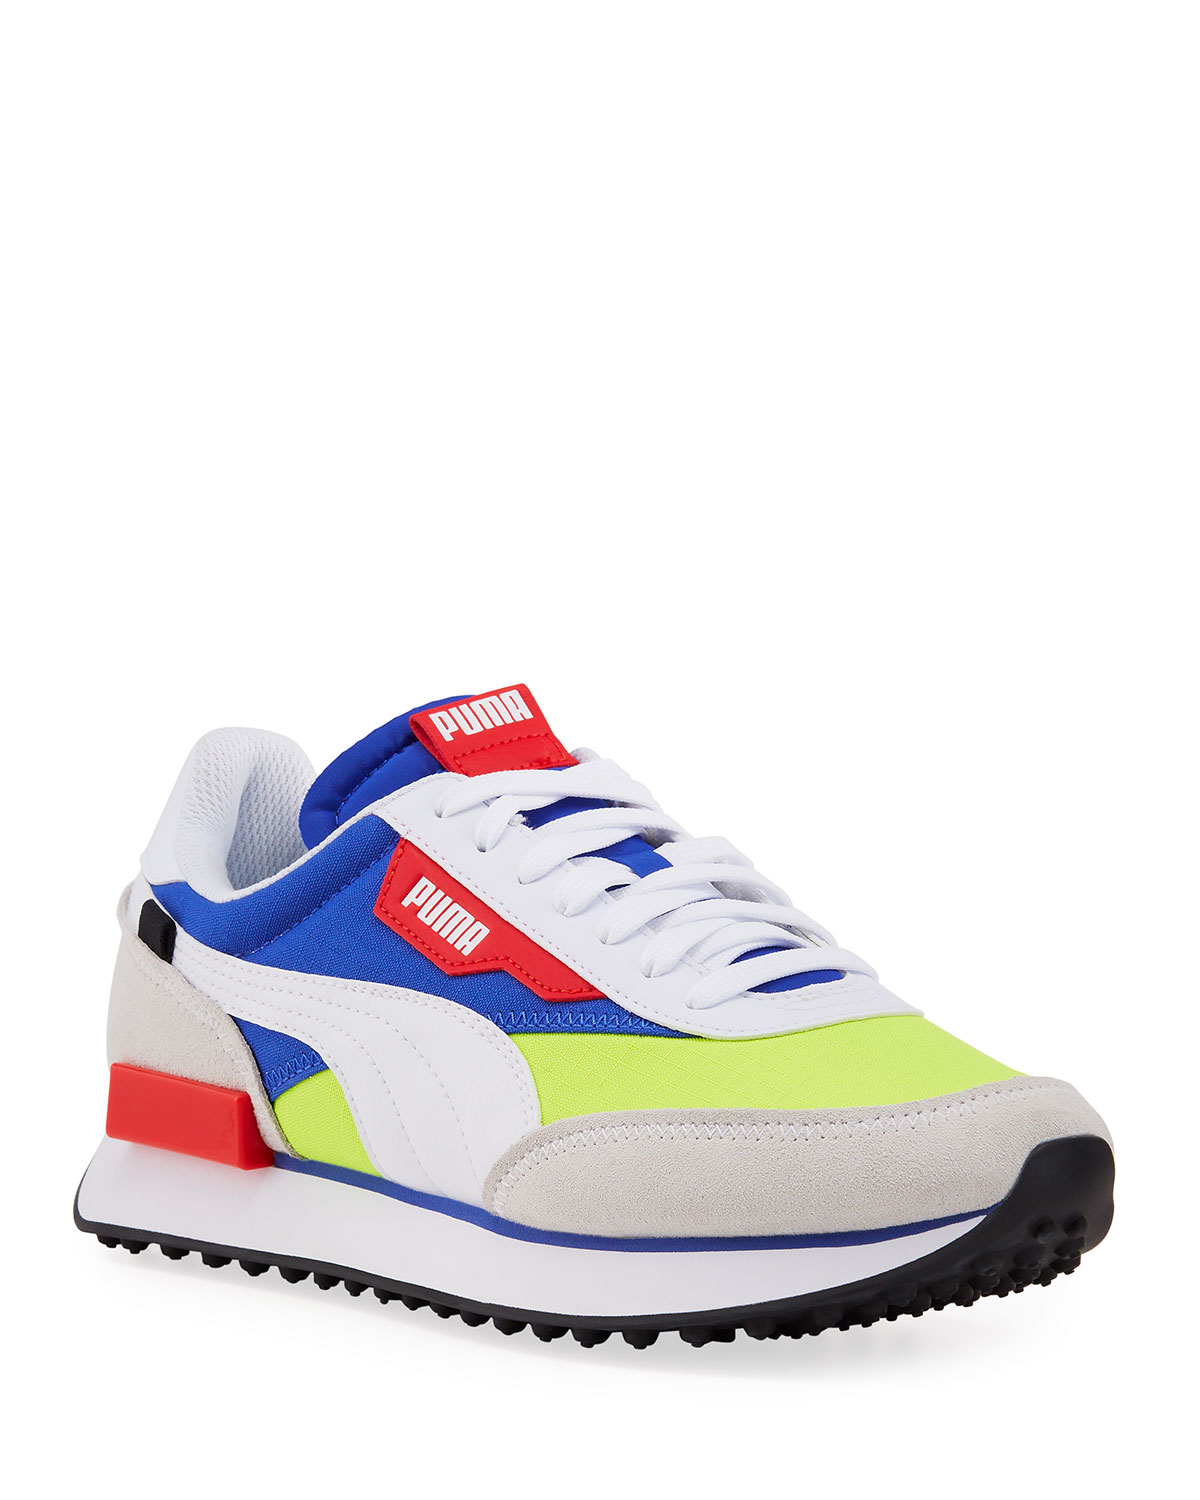 Future Rider Play On Runner Sneakers